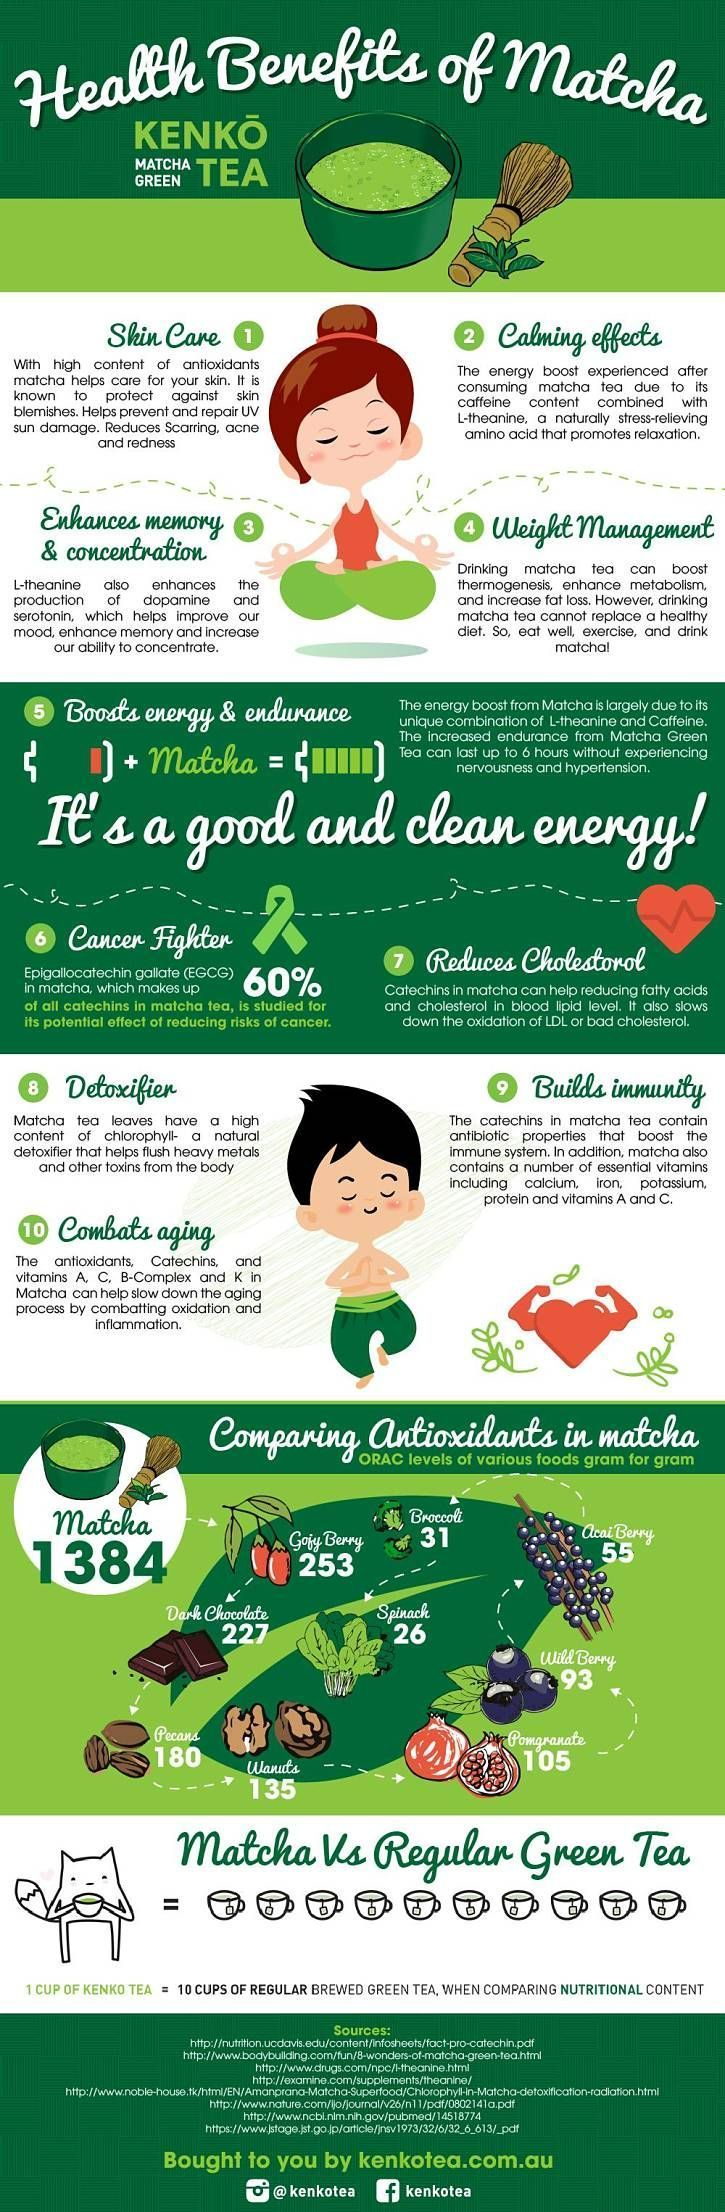 Matcha Green Tea health Benefits Infographic by Kenko tea I am really loving matcha tea!❤️  Find more relevant stuff: victoriasbestmatchatea.com